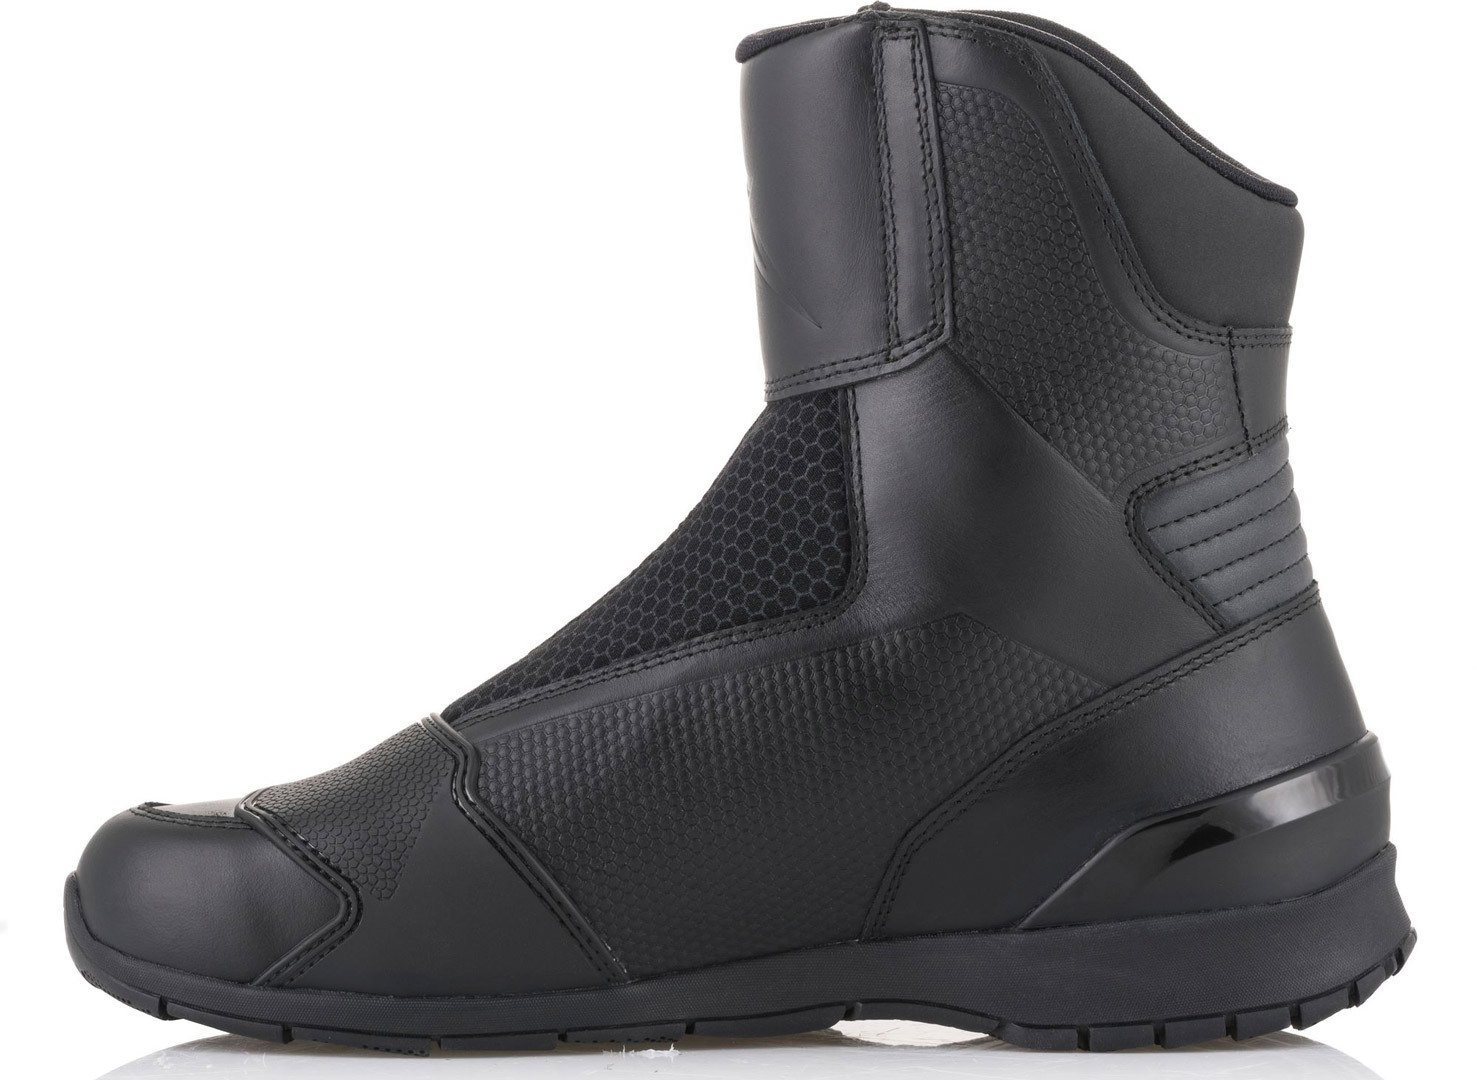 Alpinestars Portland Gore-Tex CE Leather Motorcycle Touring Boots Black